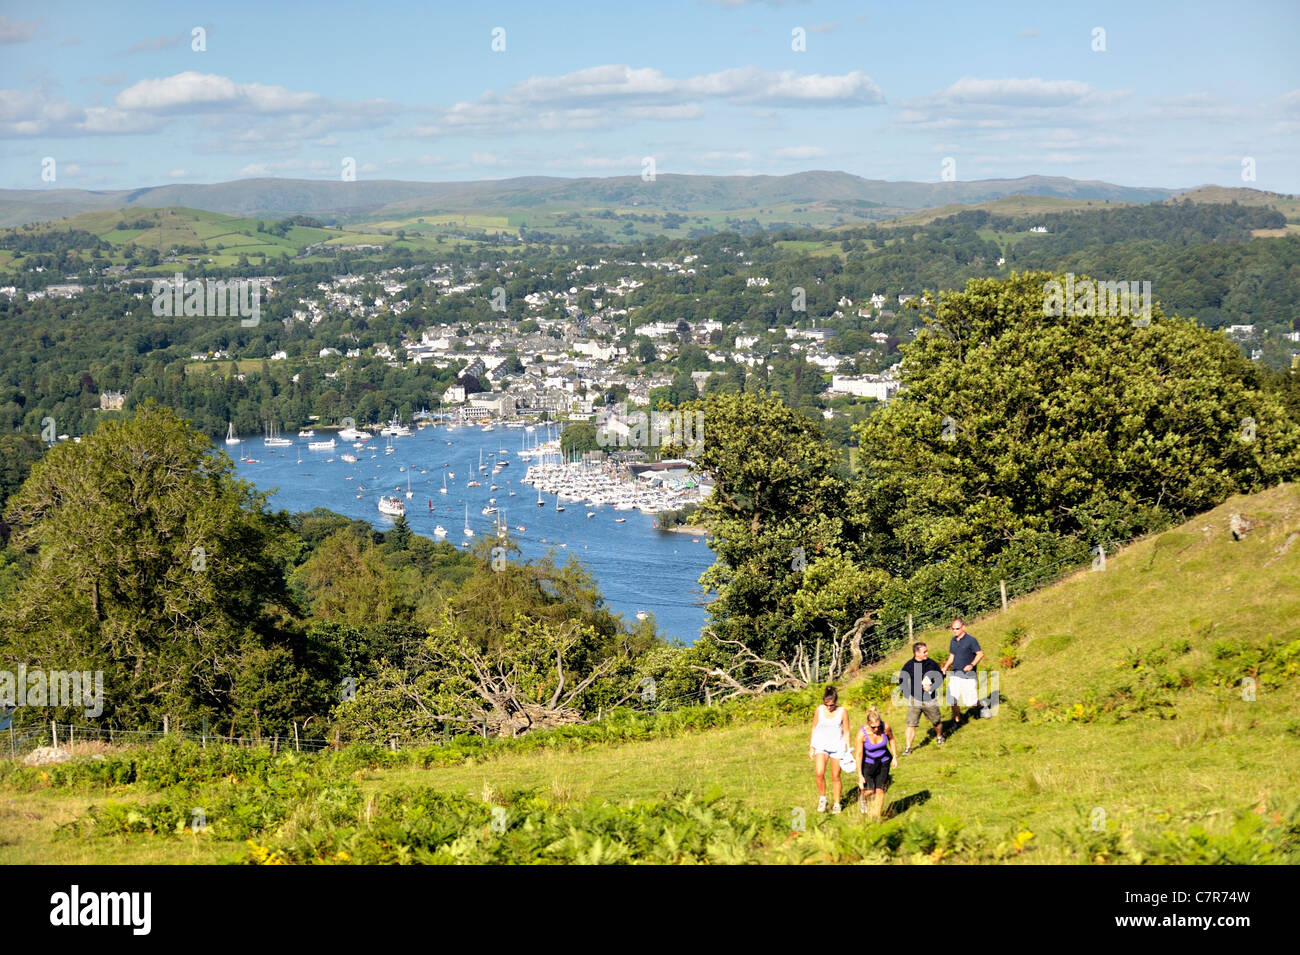 Walkers above Windermere. Lake District National Park, Cumbria, England. N.E. over Bowness on Windermere from above - Stock Image